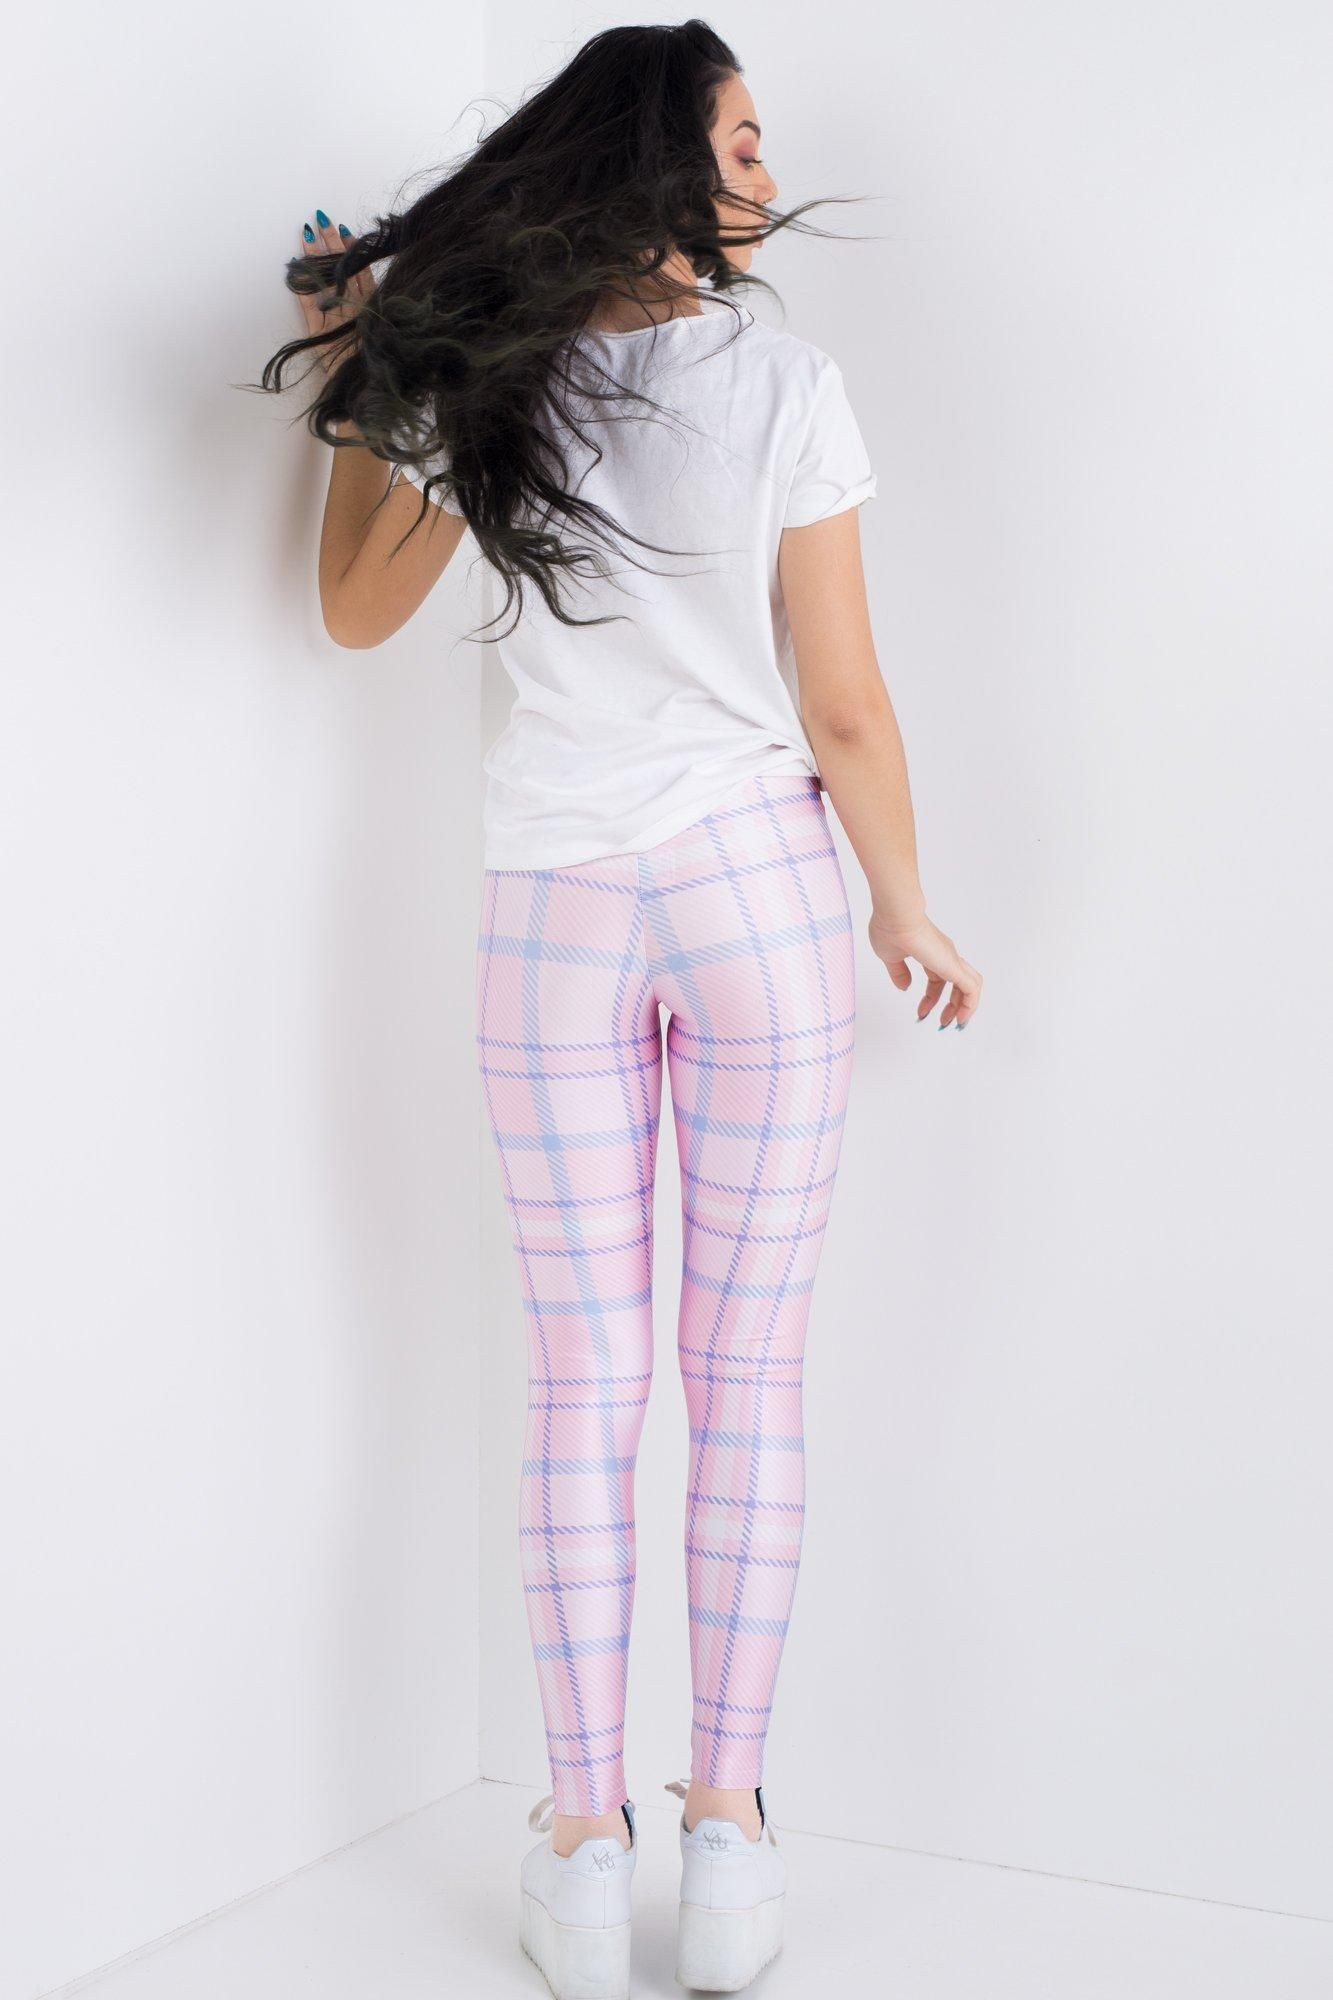 White and pink clothing lookbook ideas with leggings, tartan, tights